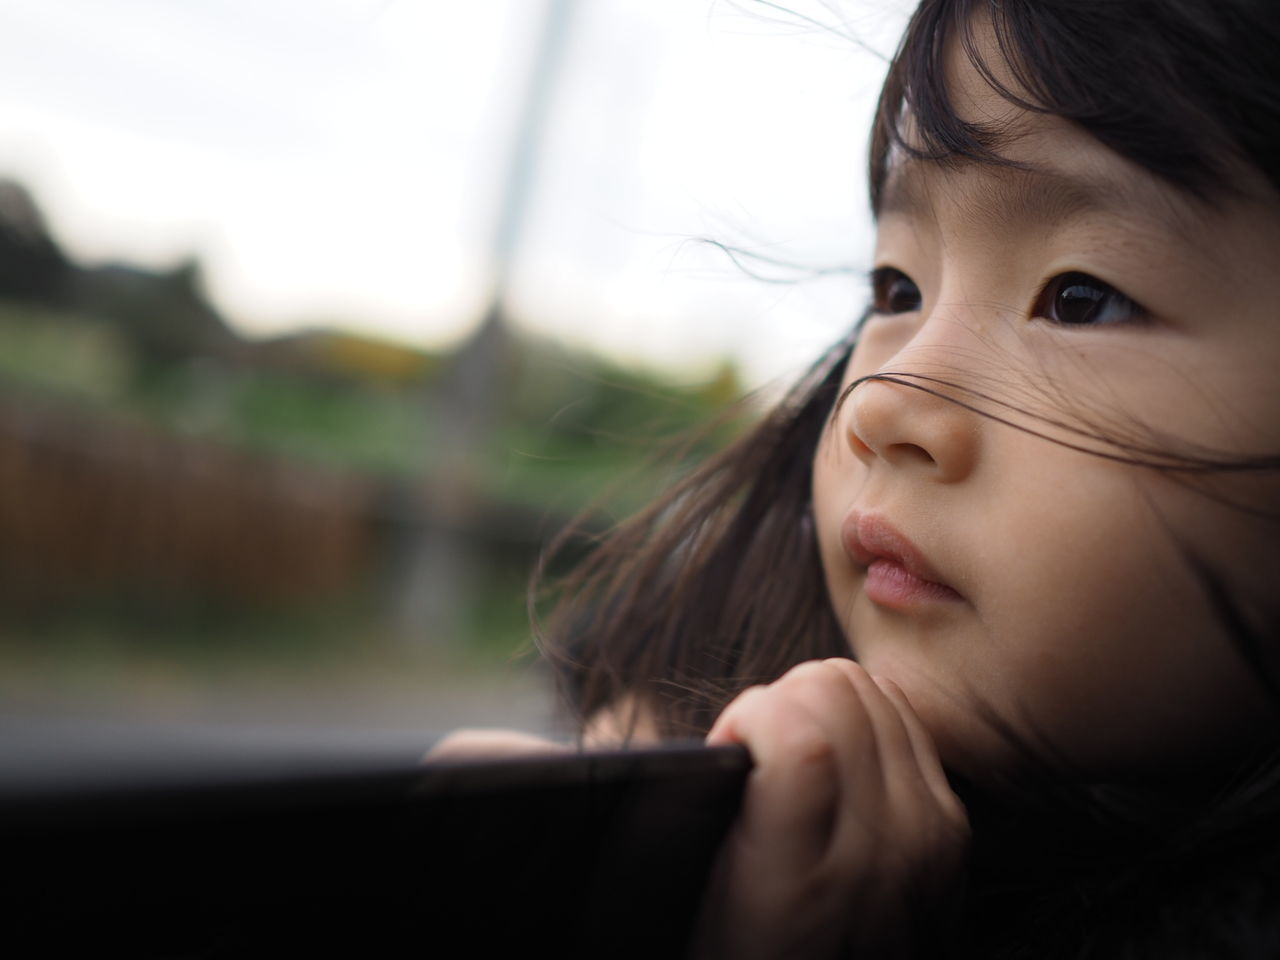 Beautiful stock photos of kids,  2-3 Years,  Asian Appearance,  Brown Hair,  Casual Clothing